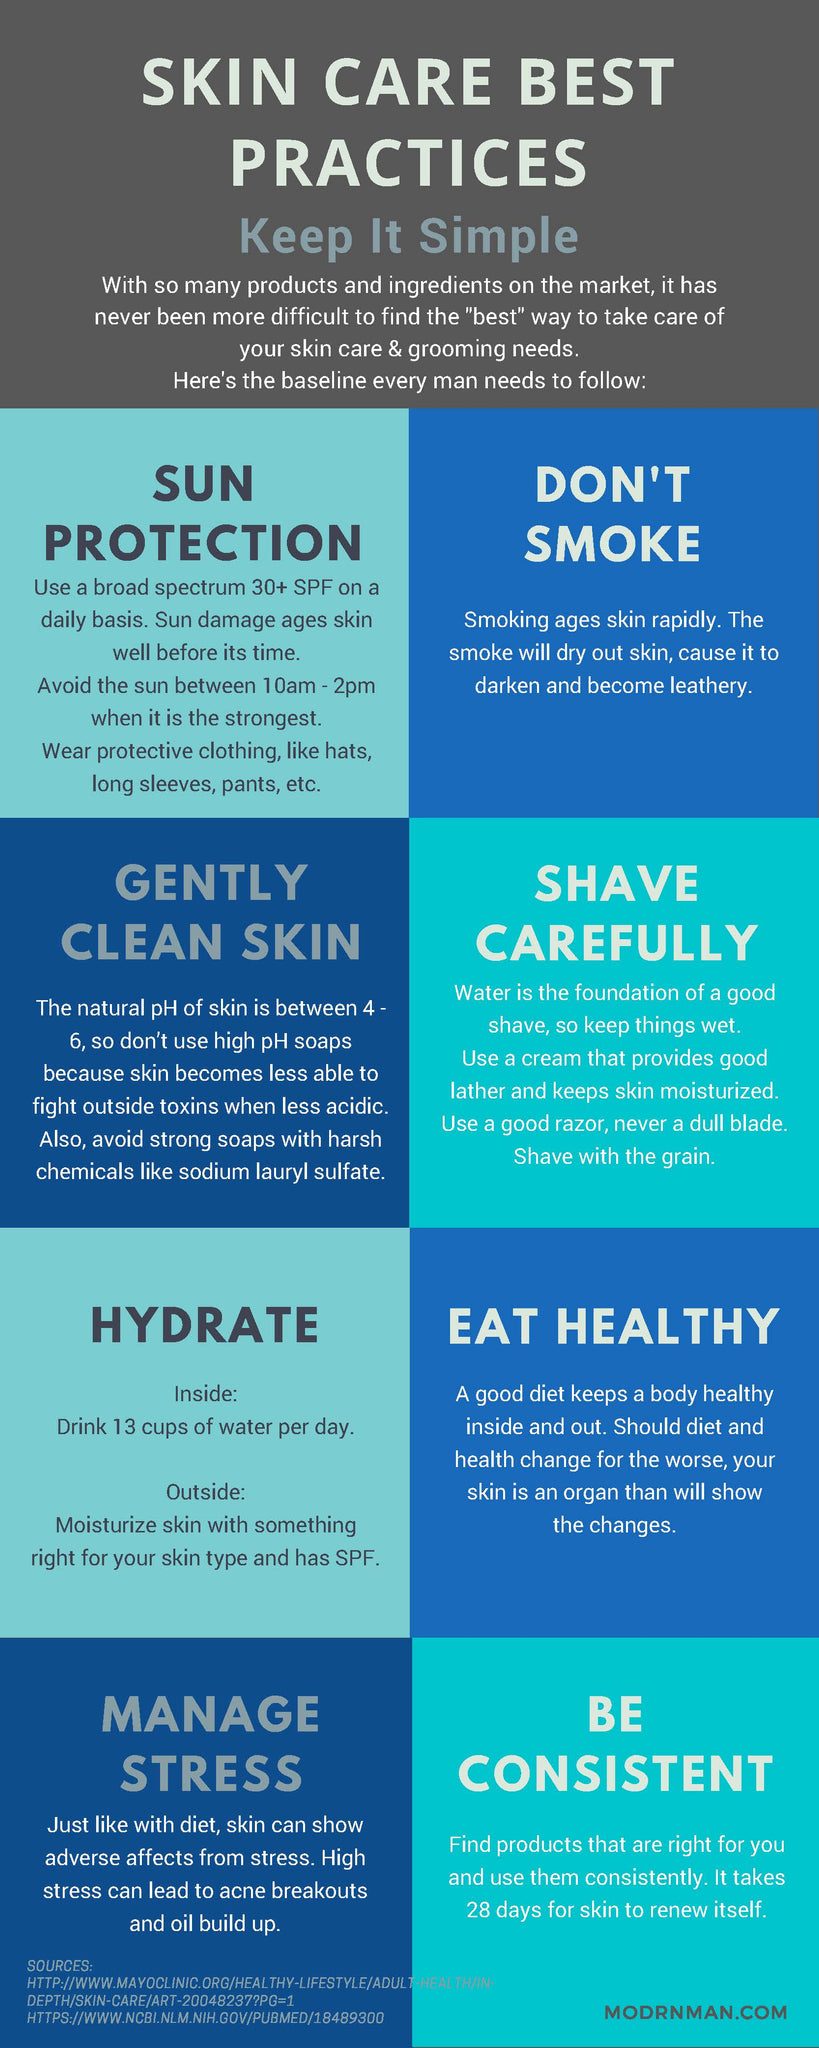 Easy tips for skin care and grooming for men.